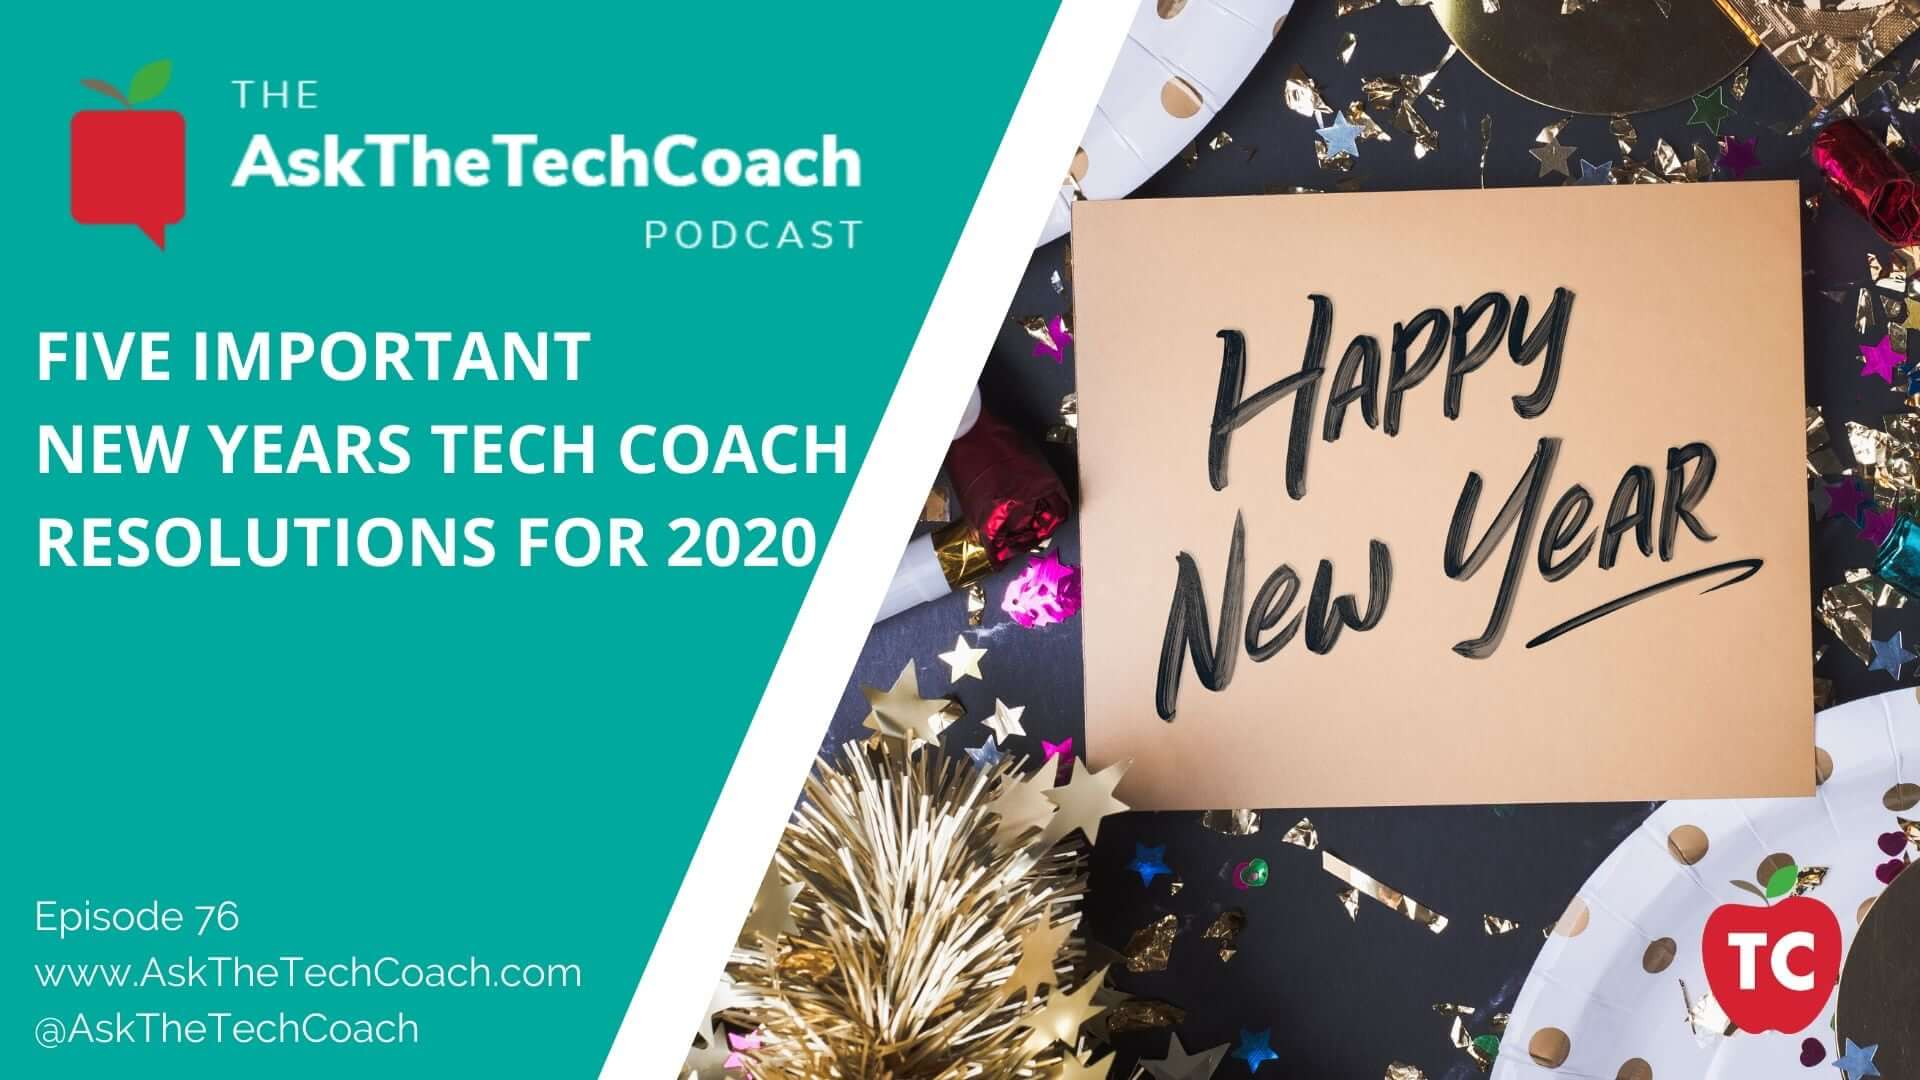 New Years Resolutions for Tech Coaches